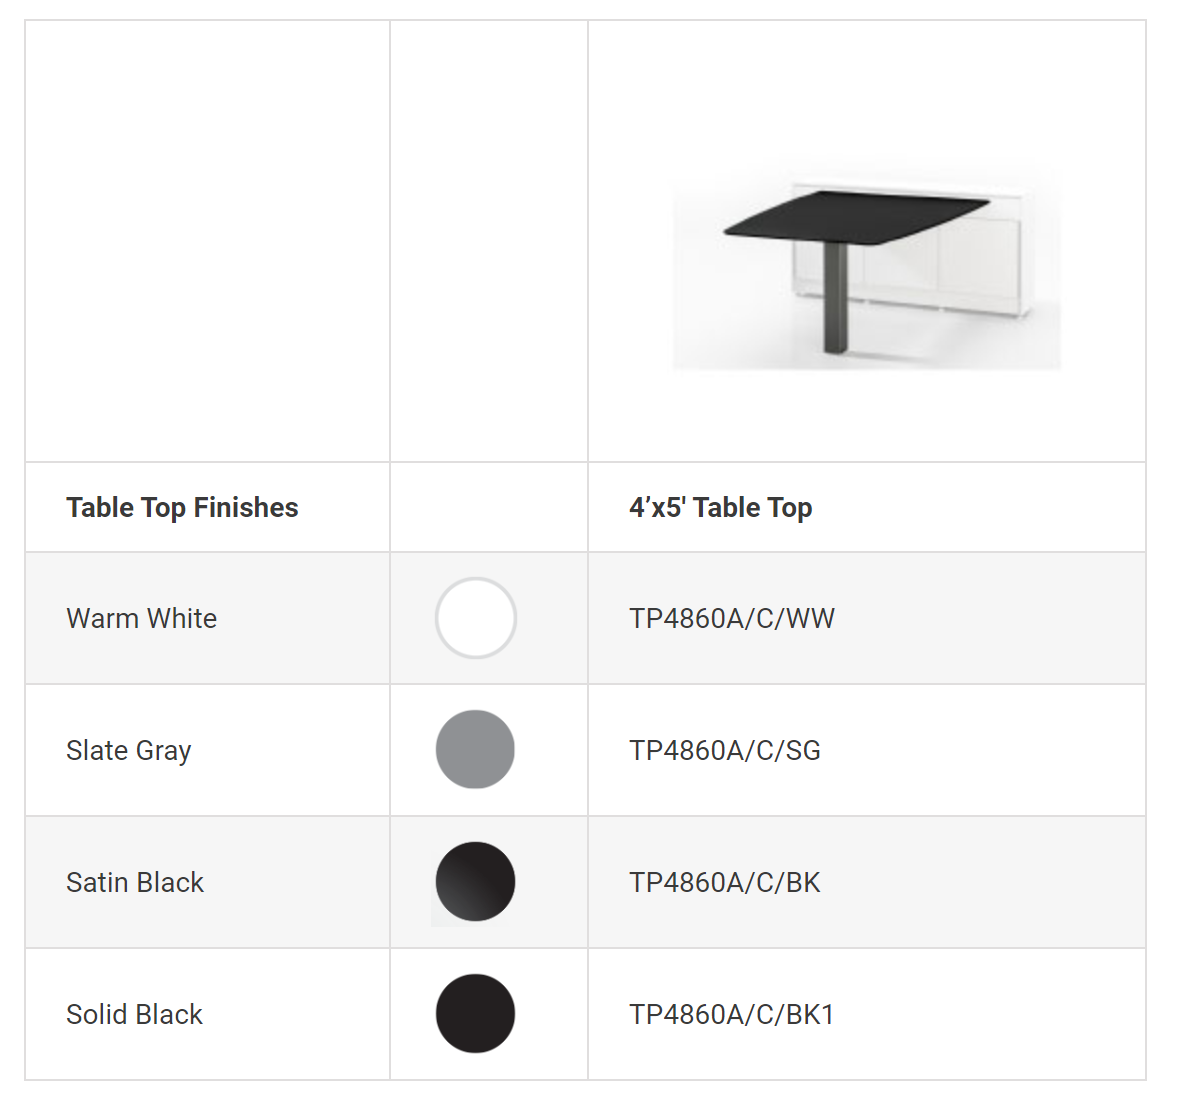 Model Numbers for Table Tops